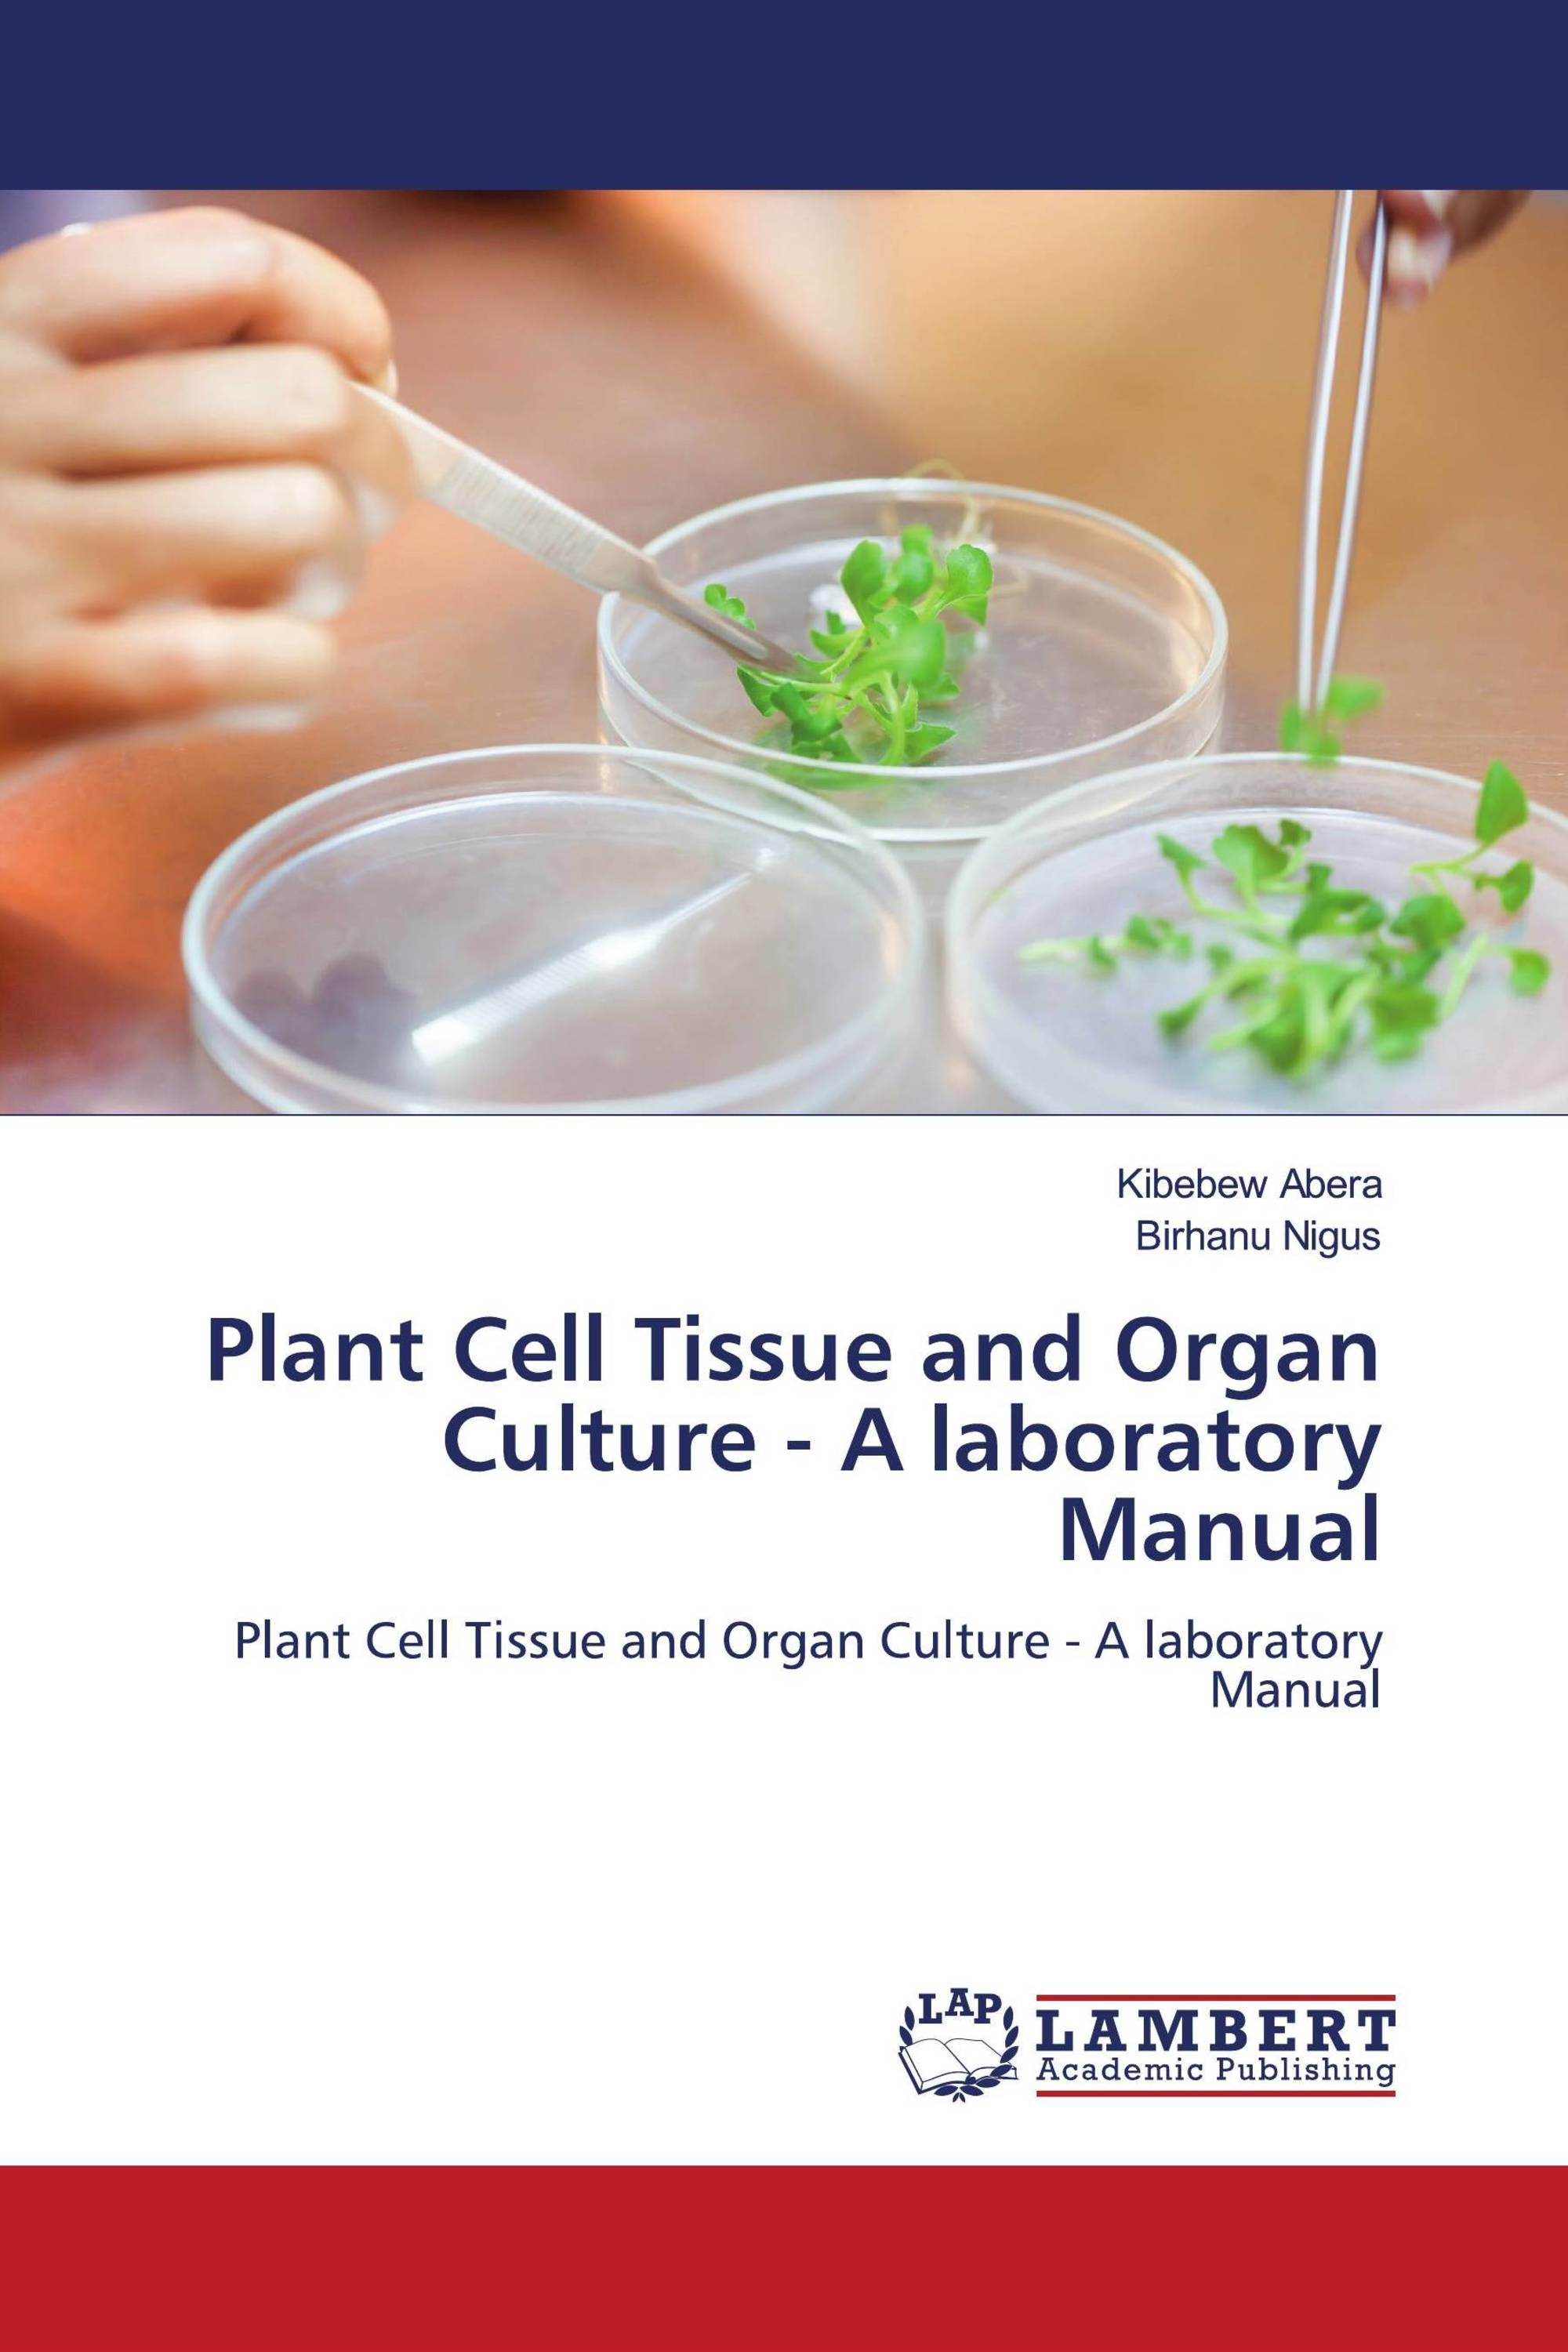 Plant Cell Tissue and Organ Culture - A laboratory Manual